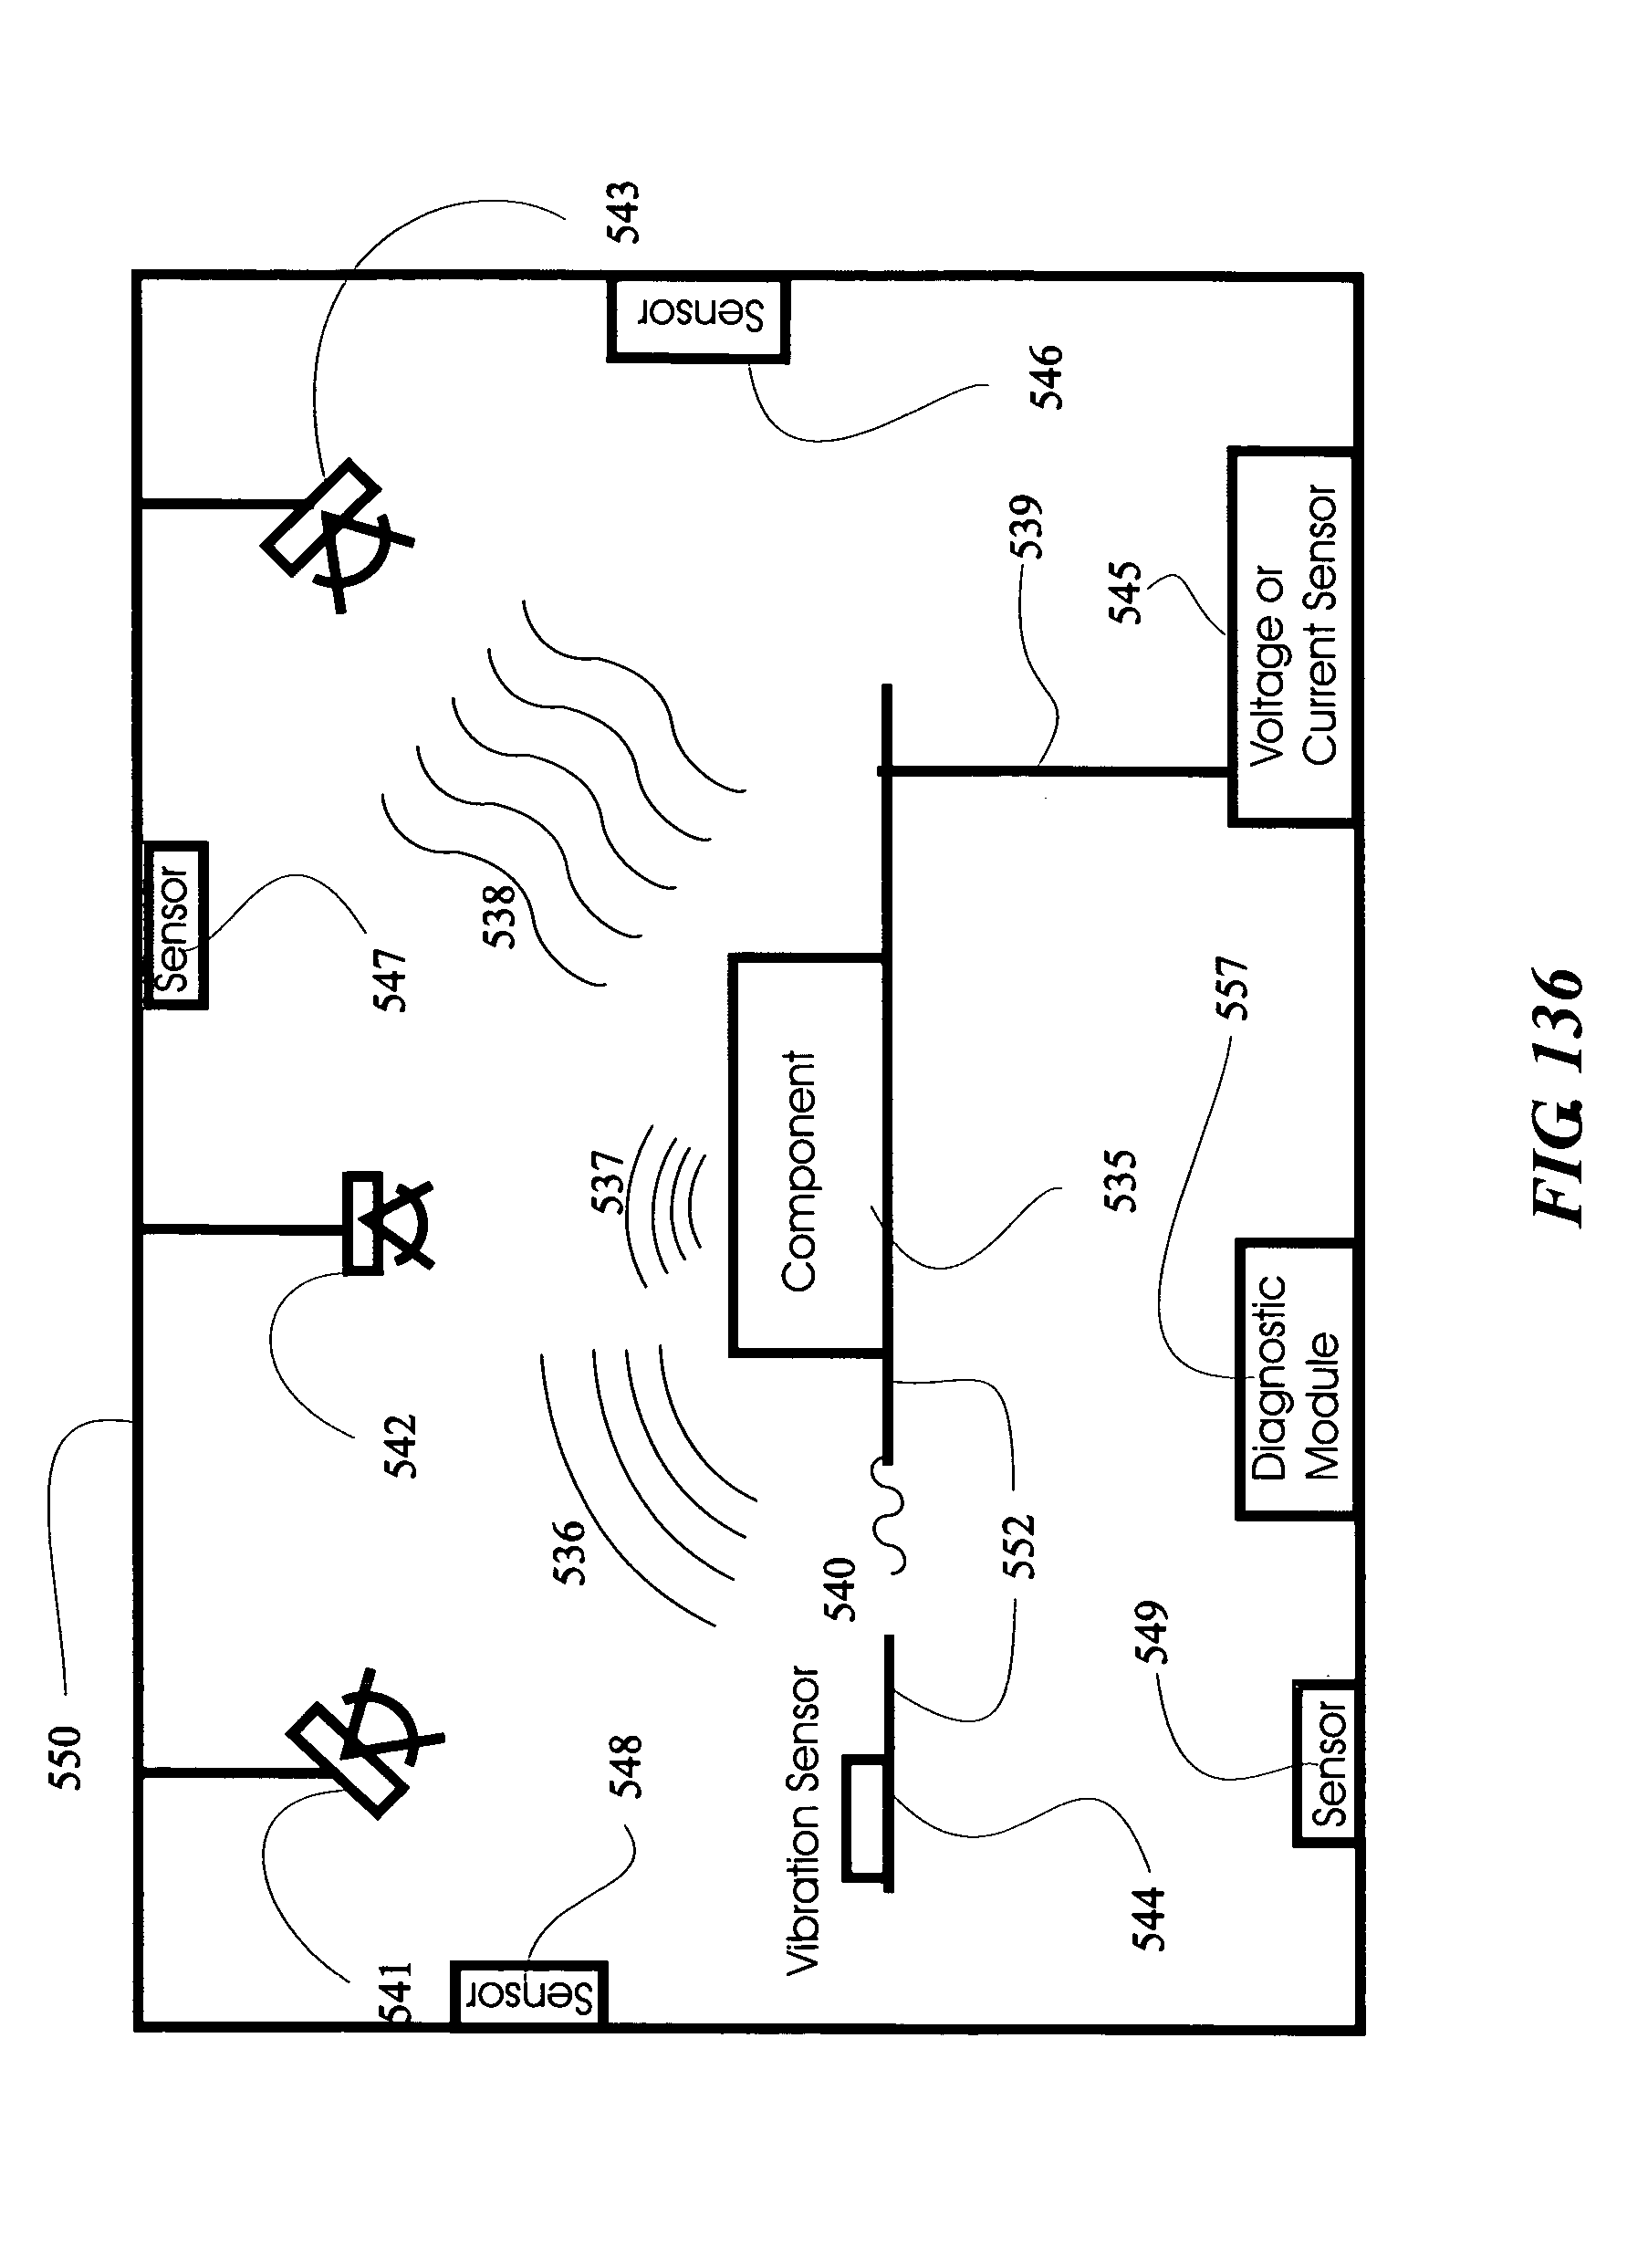 Patent Us 7164117 B2 Inductive Sensor Circuit 1 10 From 40 Votes 2 Images